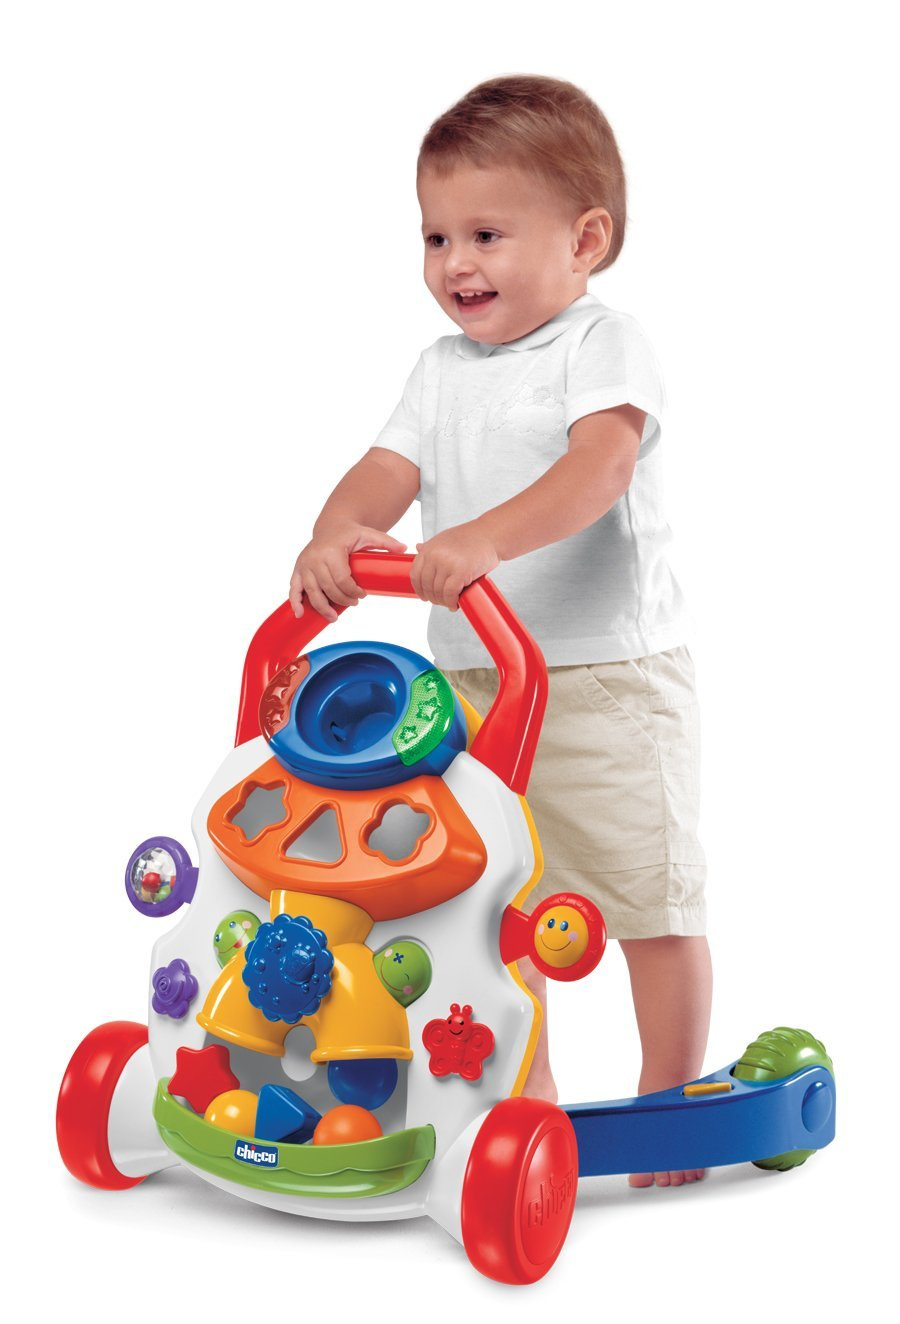 Person, Help Your Baby to Take First Step With Baby Walkers